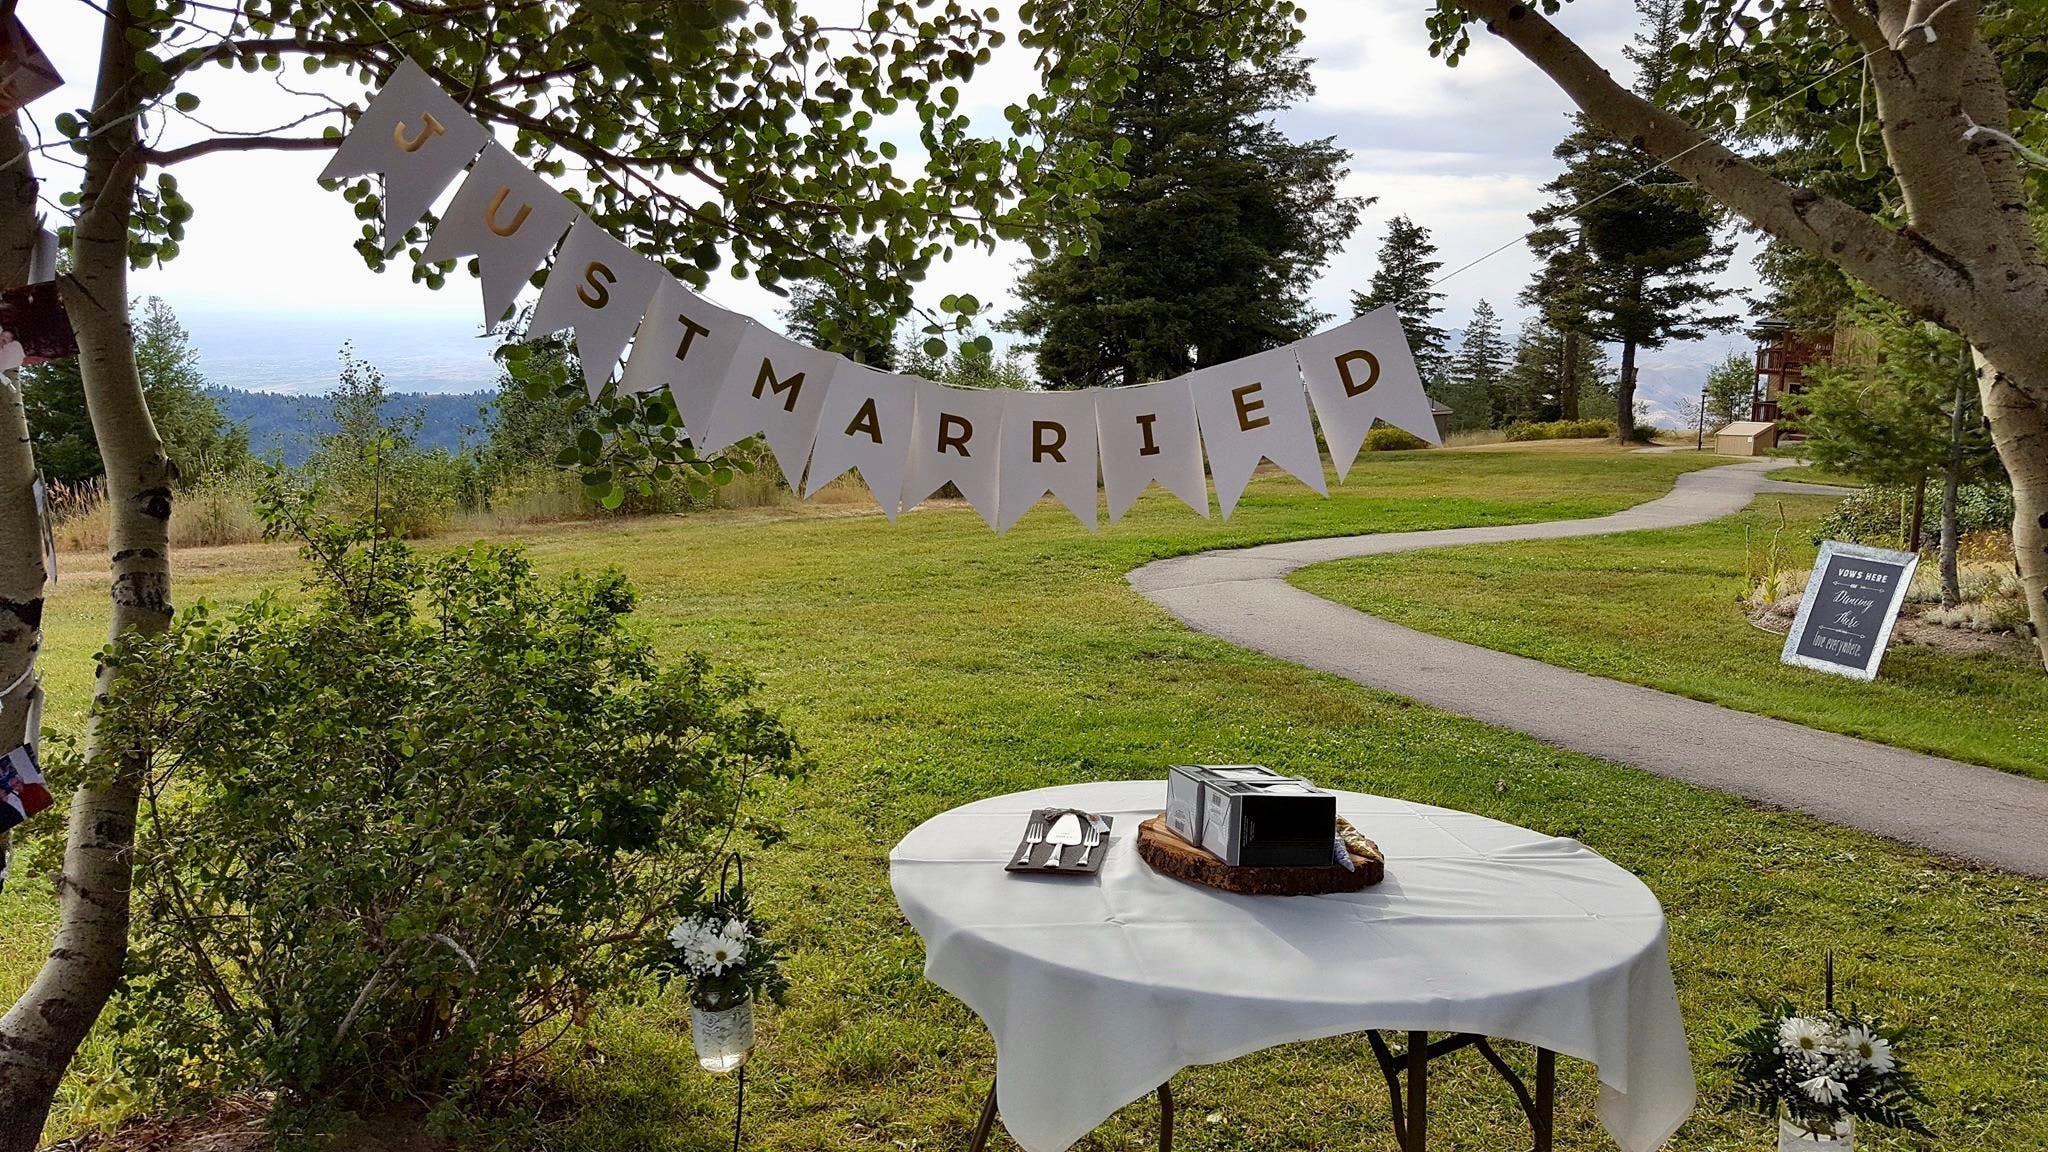 Bogus Basin Wedding featured Just Married sign